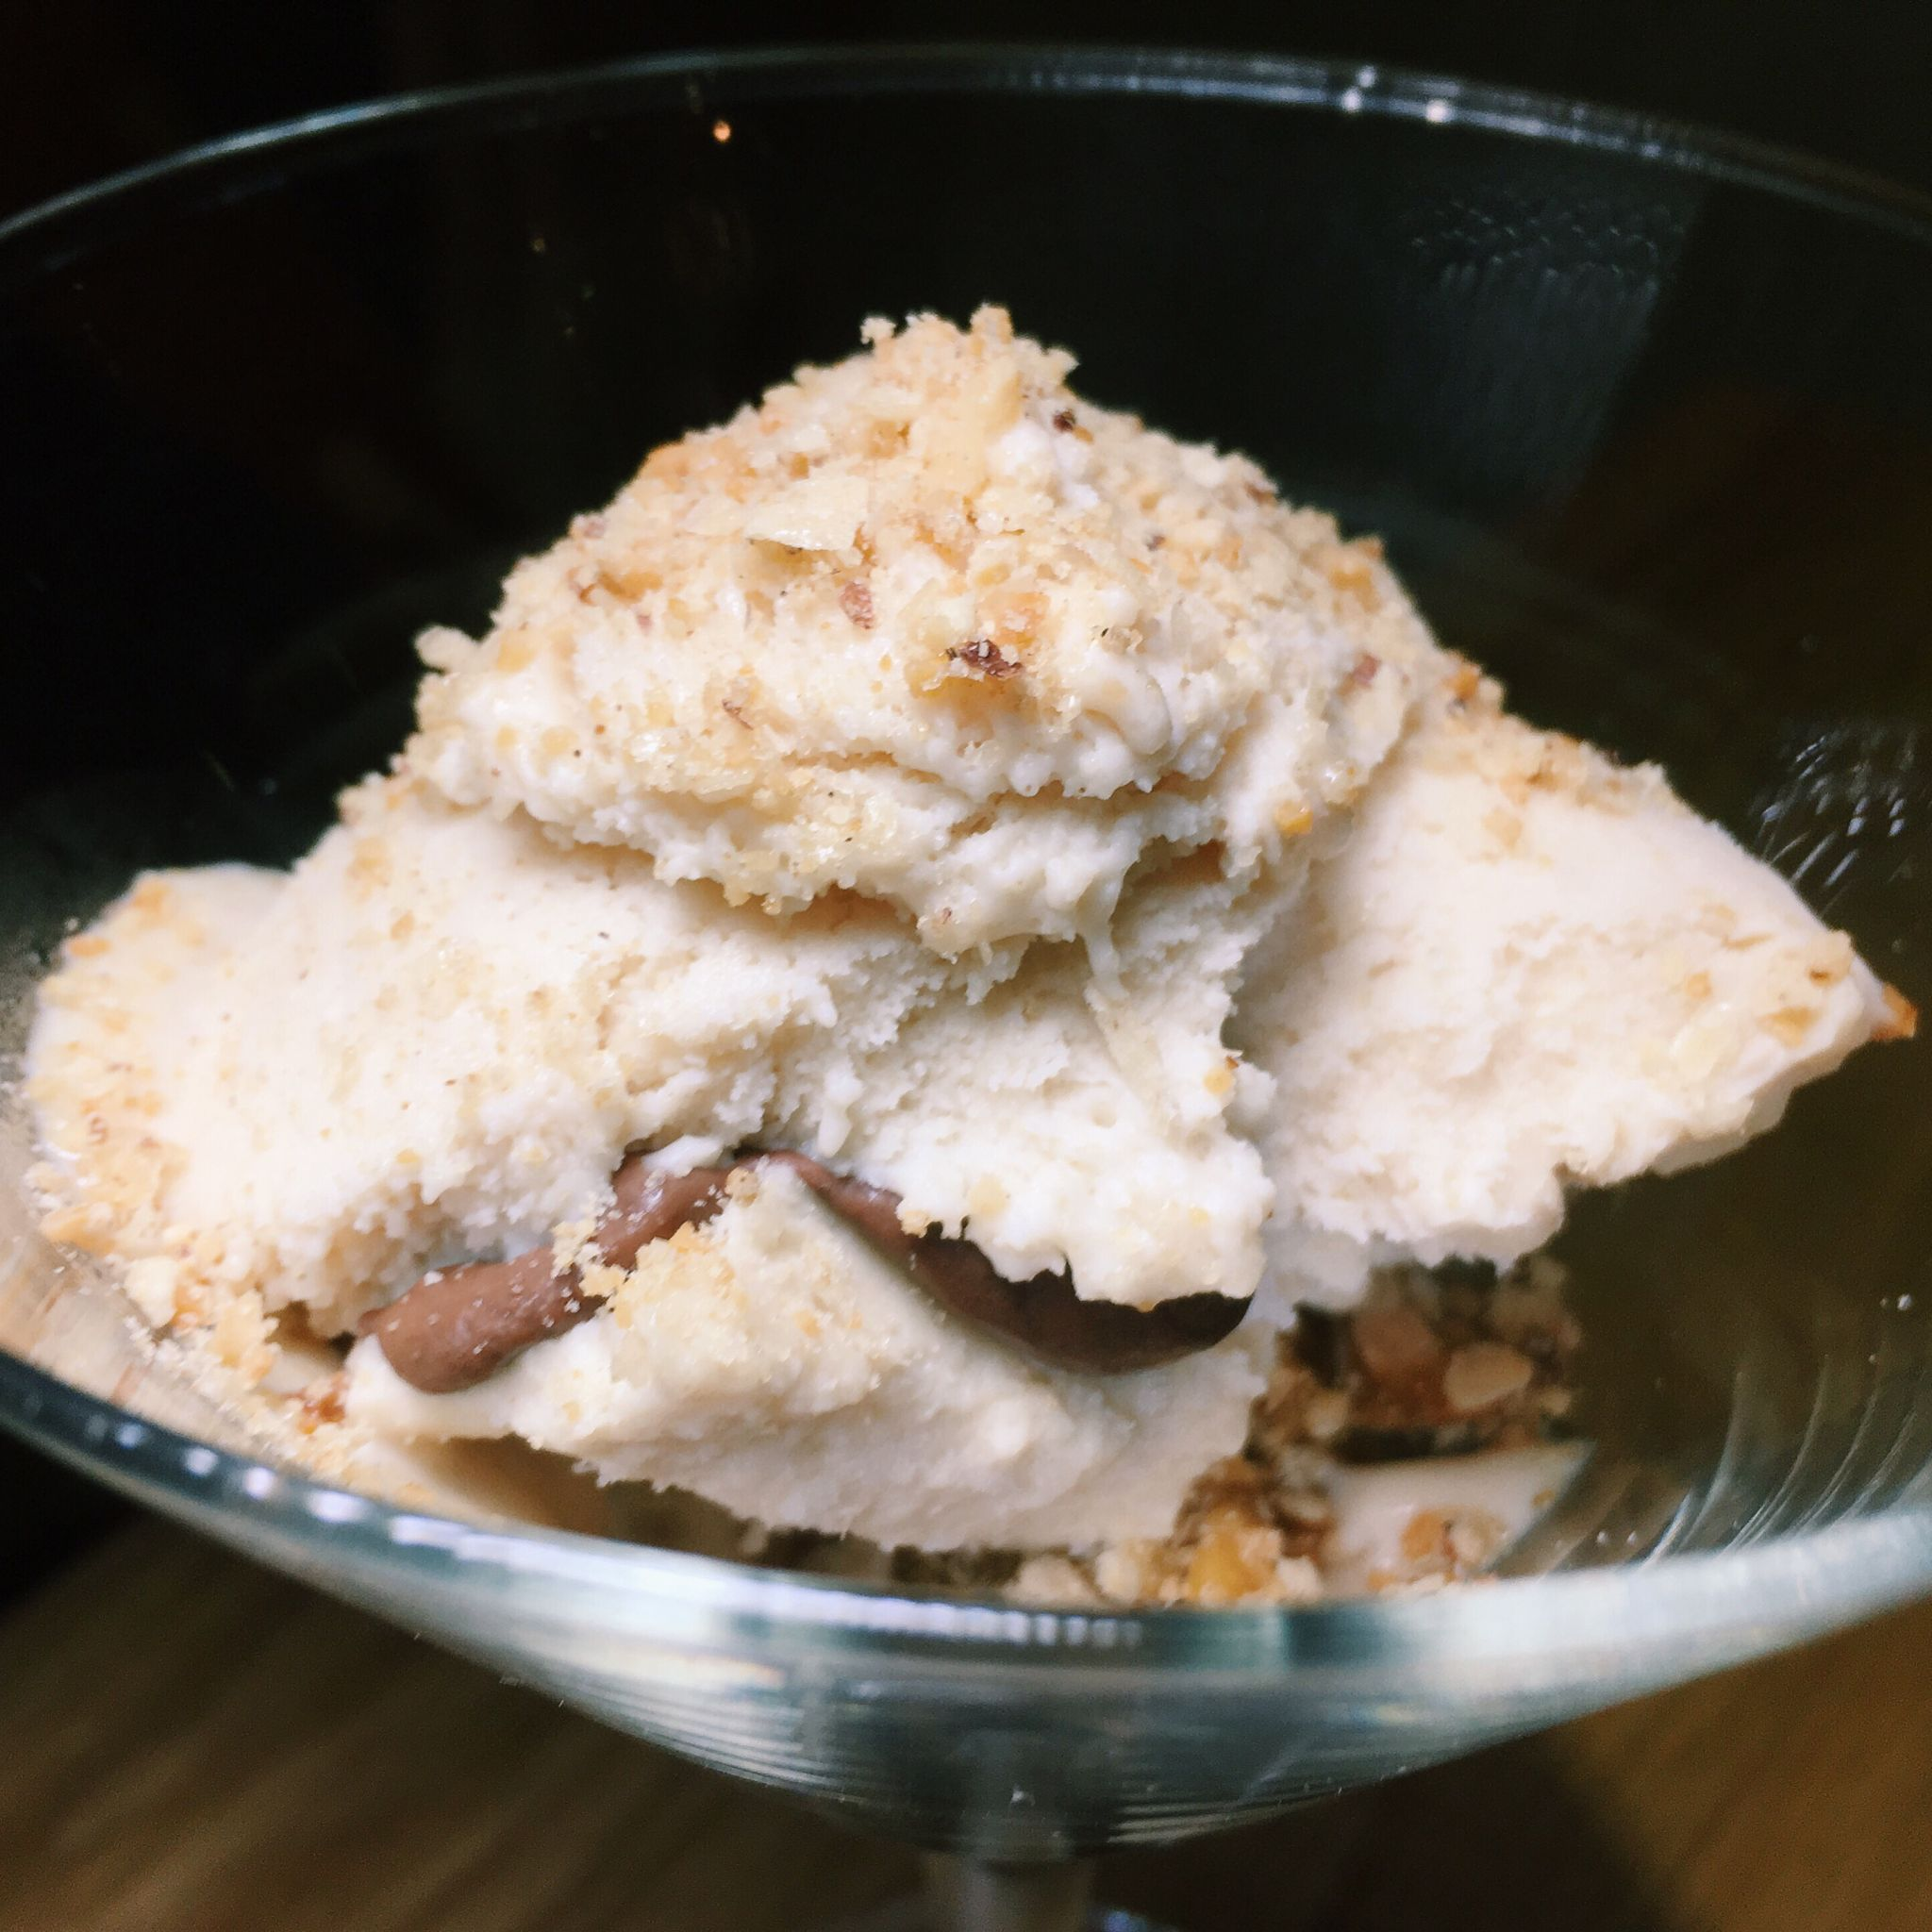 Gong Tng Chinese Peanut Candy with Peanut Butter Ice Cream - Wild Rocket